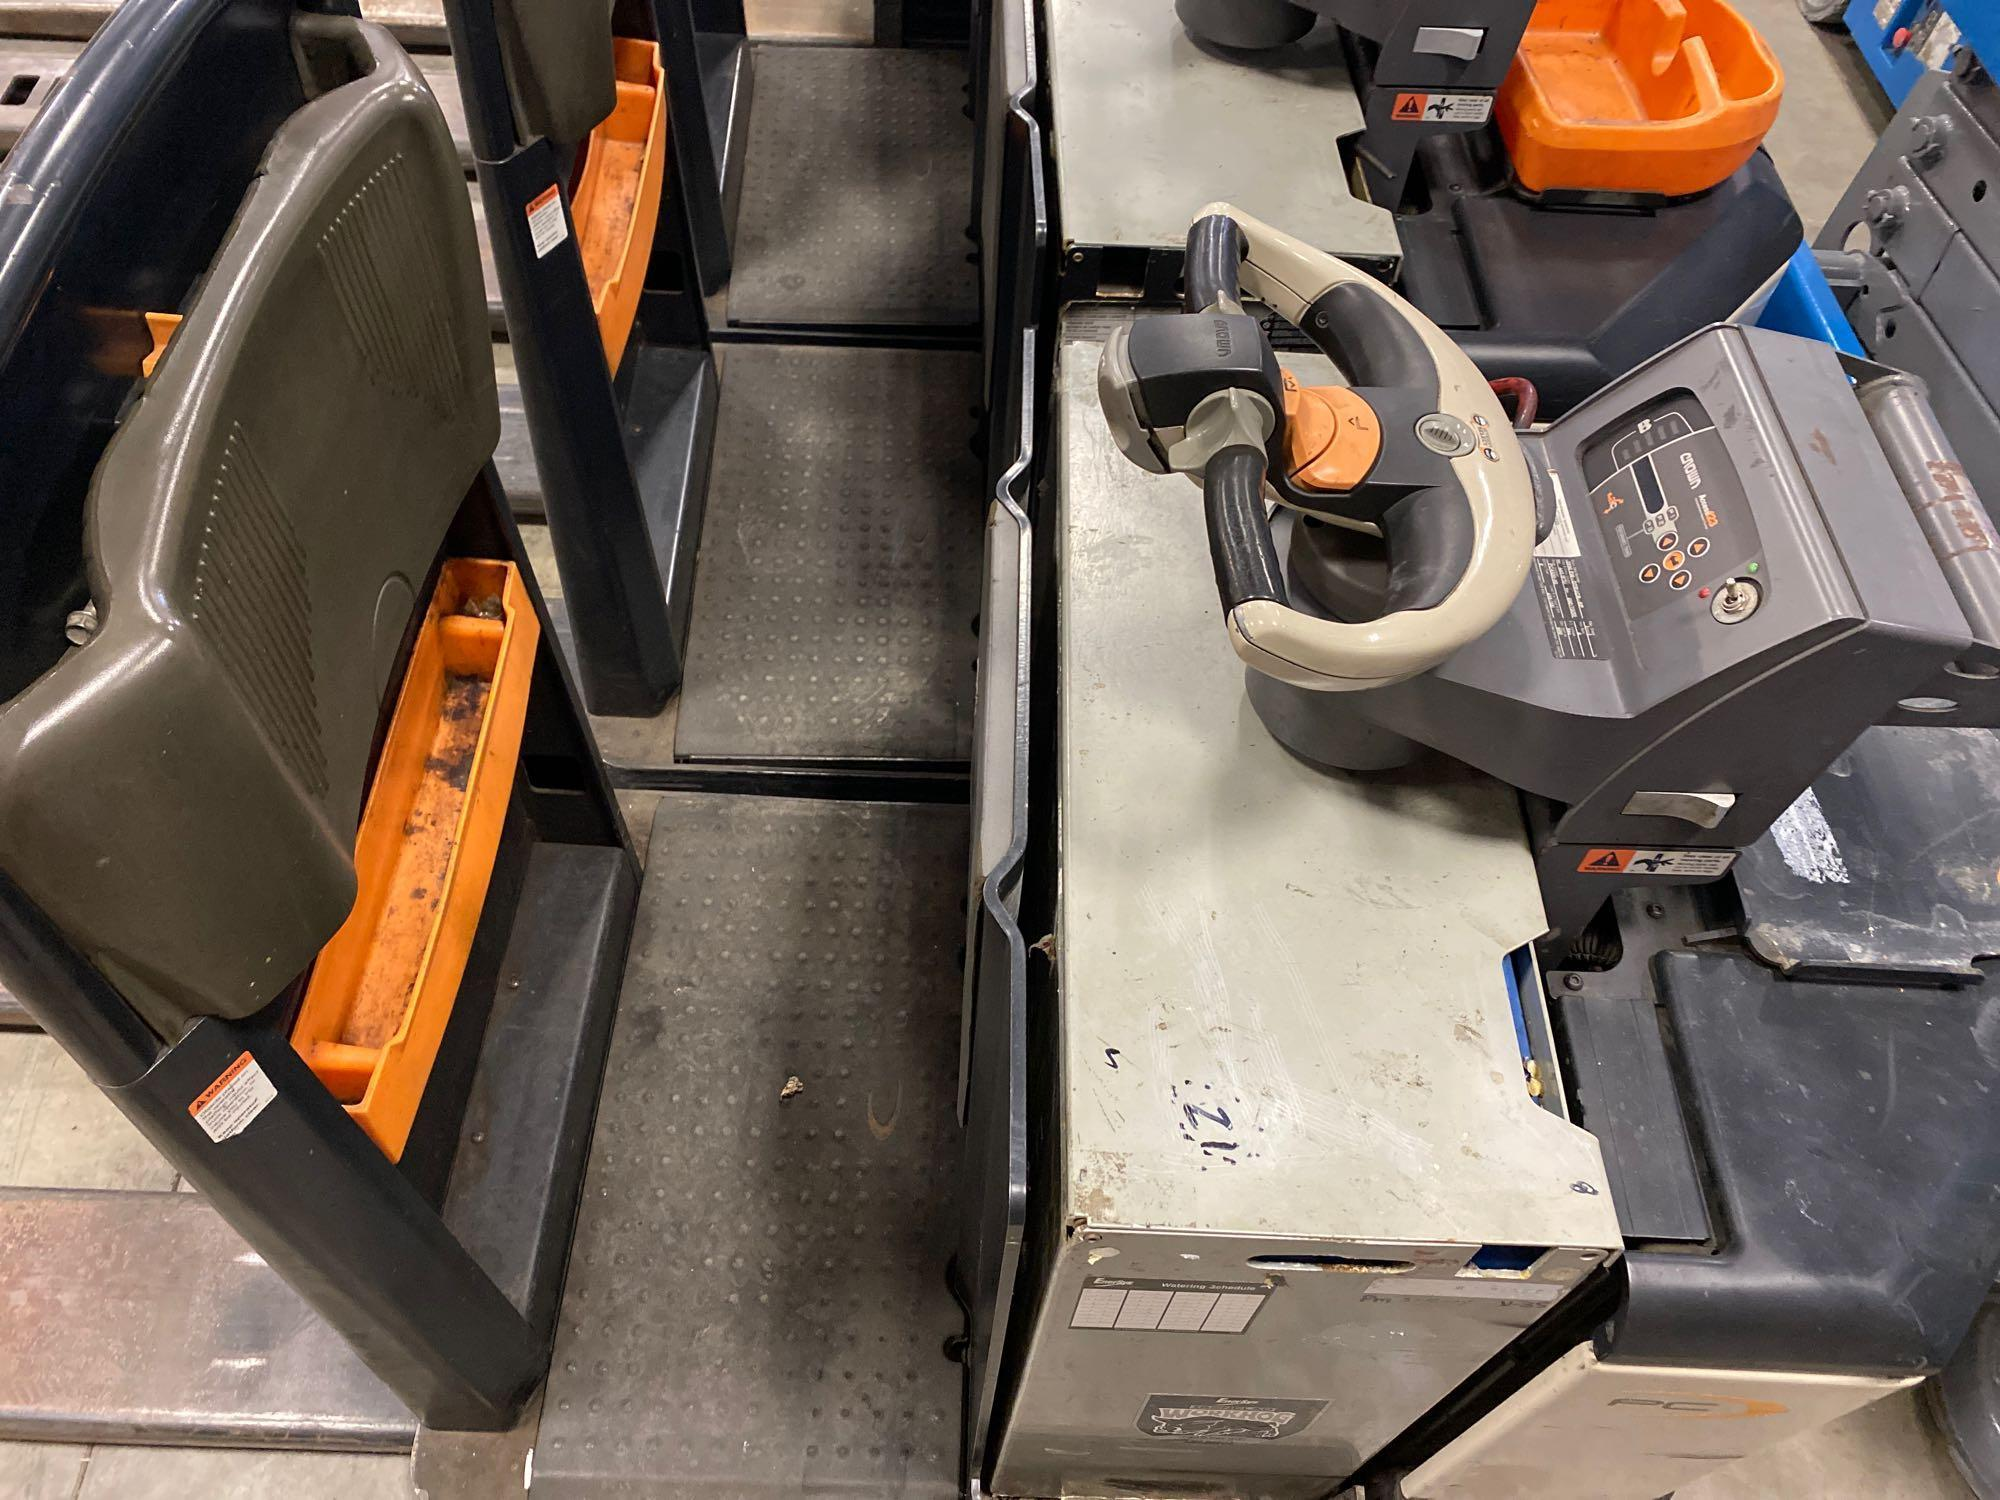 2012 CROWN ELECTRIC PALLET JACK, 8,000 LB CAPACITY, MODEL PC4500-80, 24V, RUNS AND OPERATES - Image 3 of 5